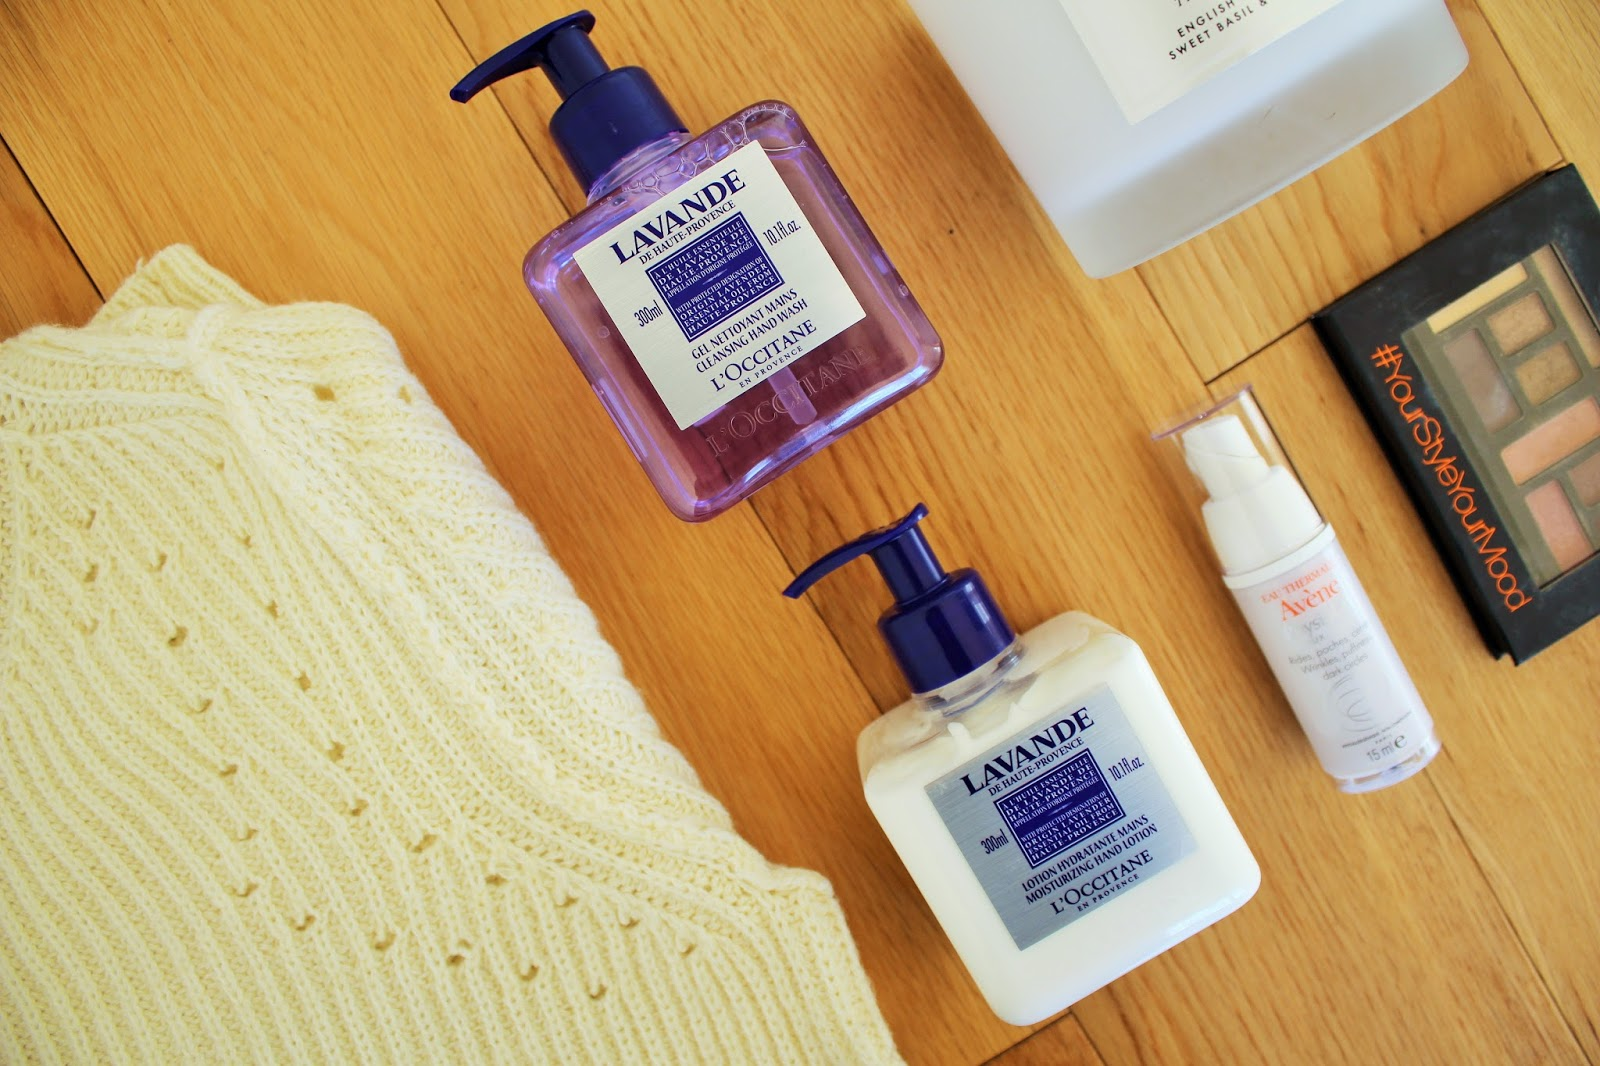 February Favourites - L'Occitane Hand Wash and Hand Cream in Lavender